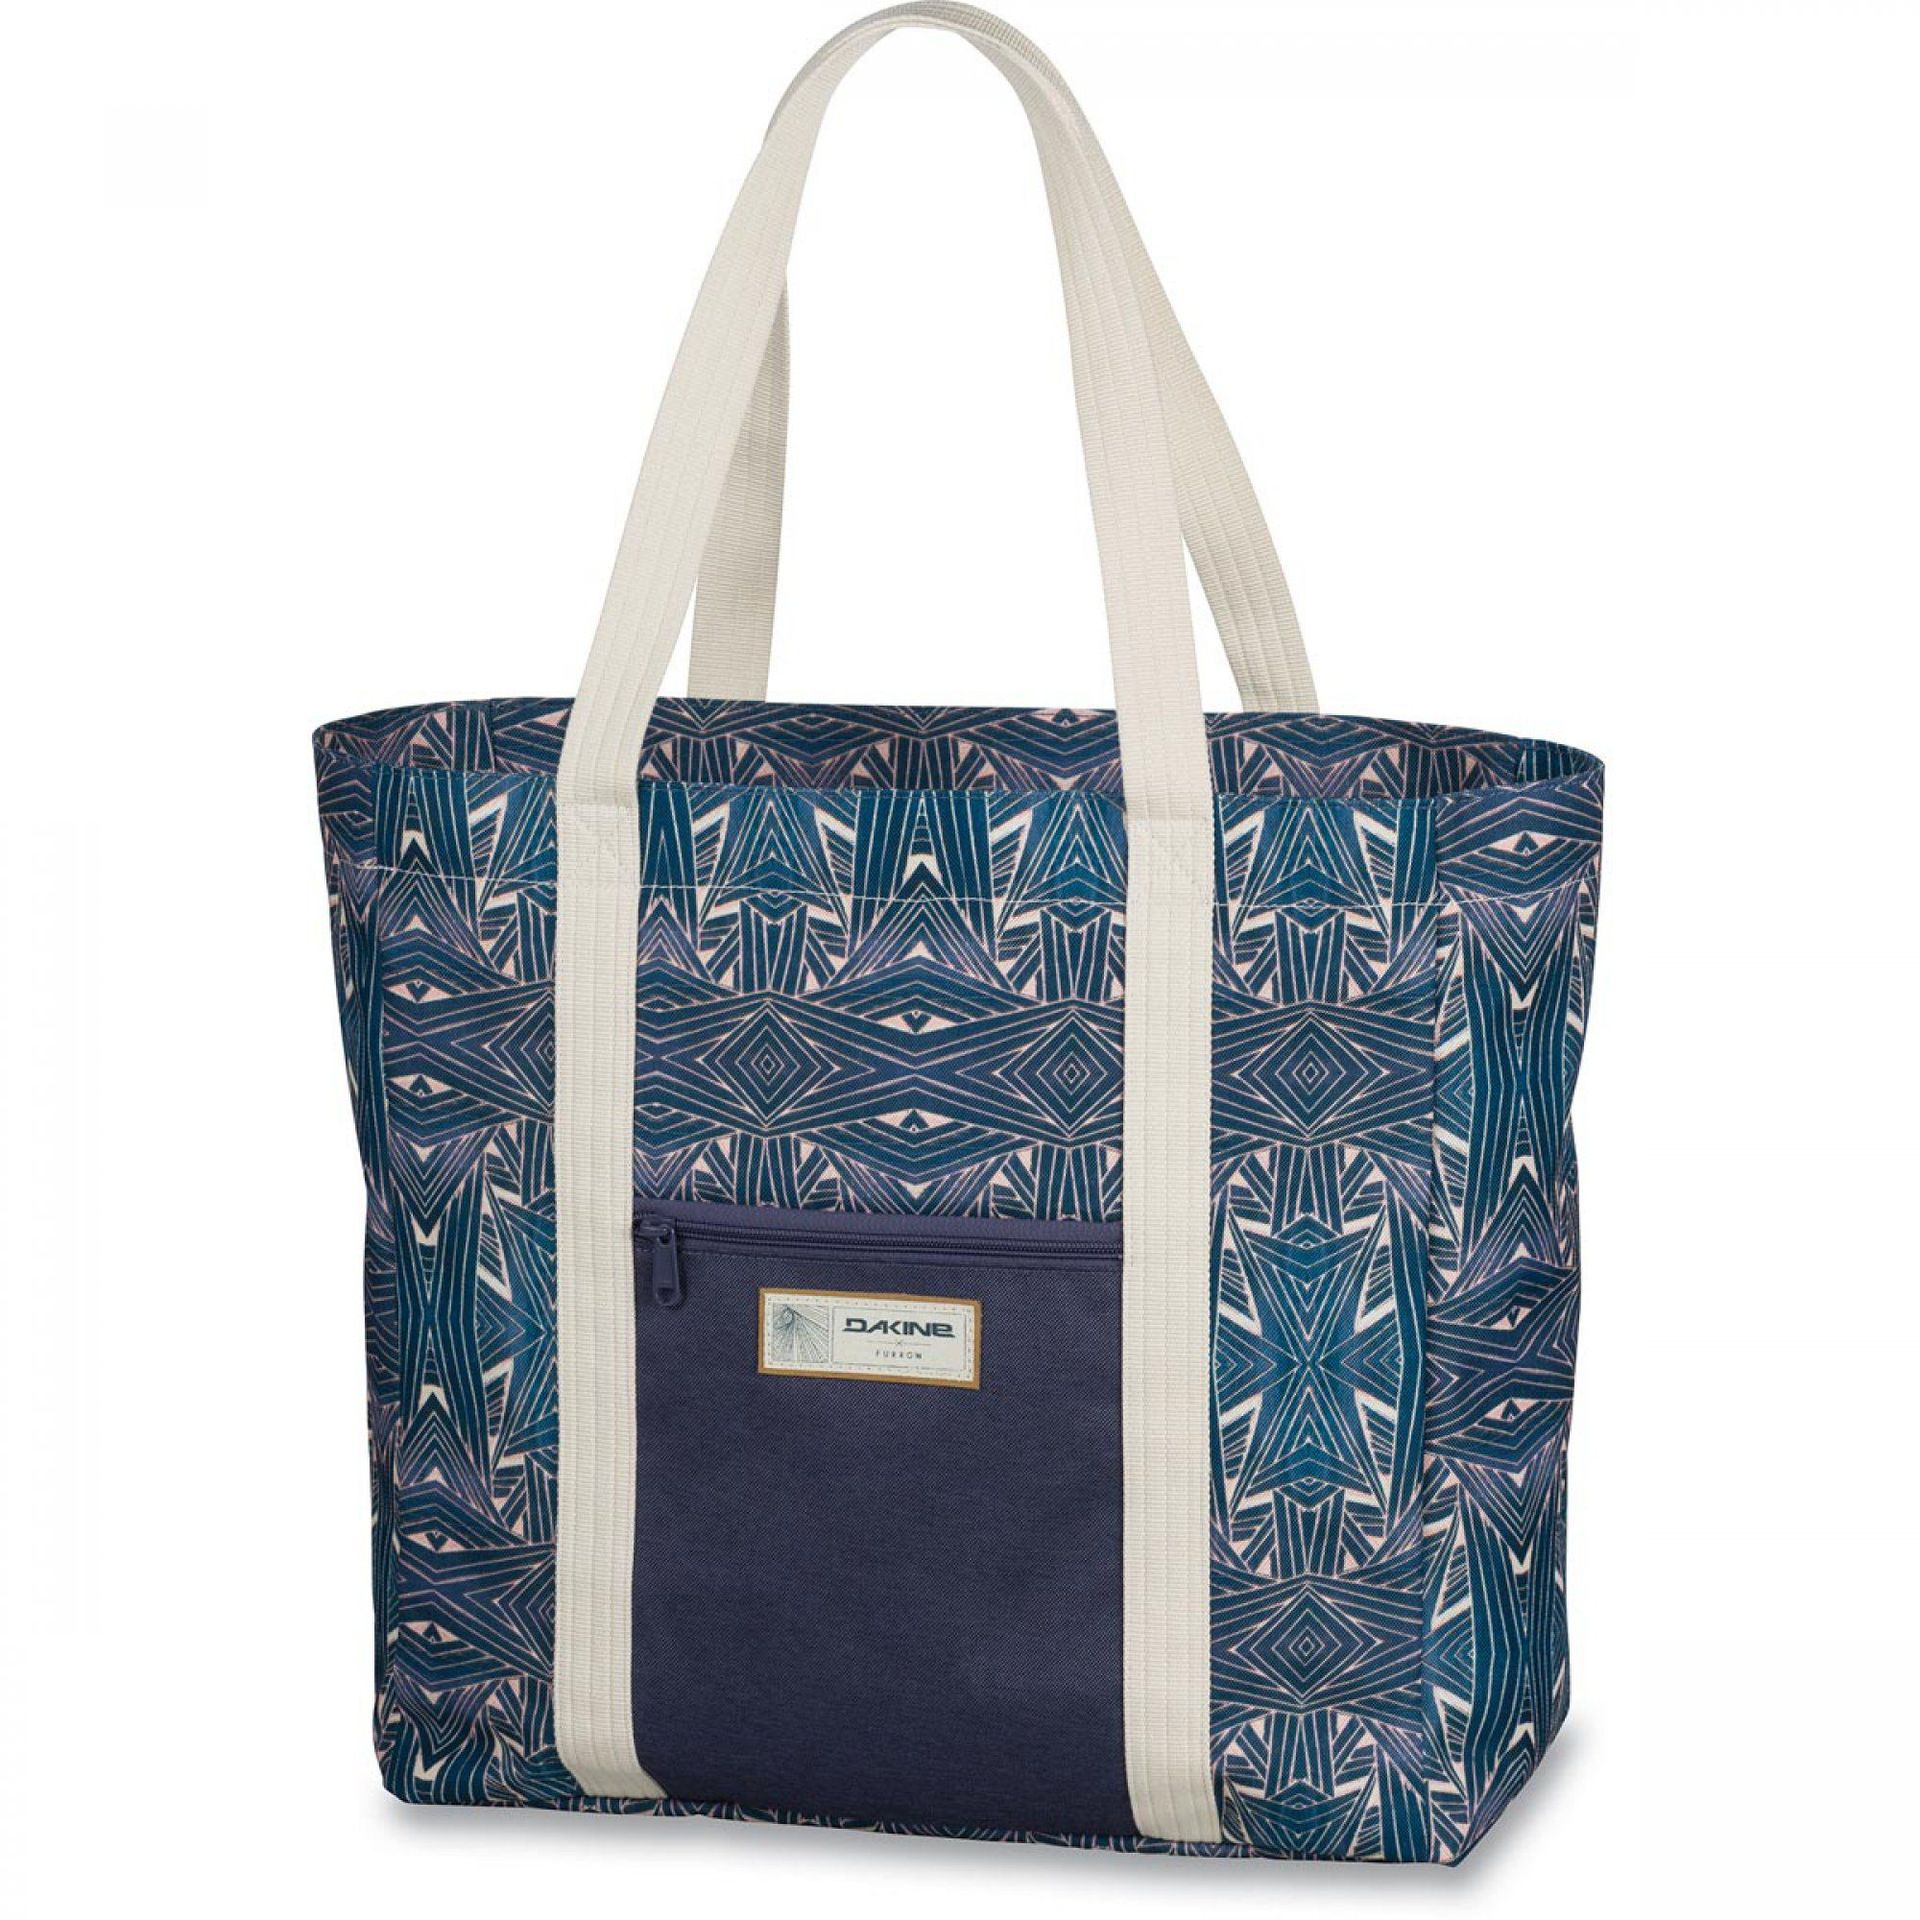 TOREBKA DAKINE PARTY COOLER TOTE FURROW